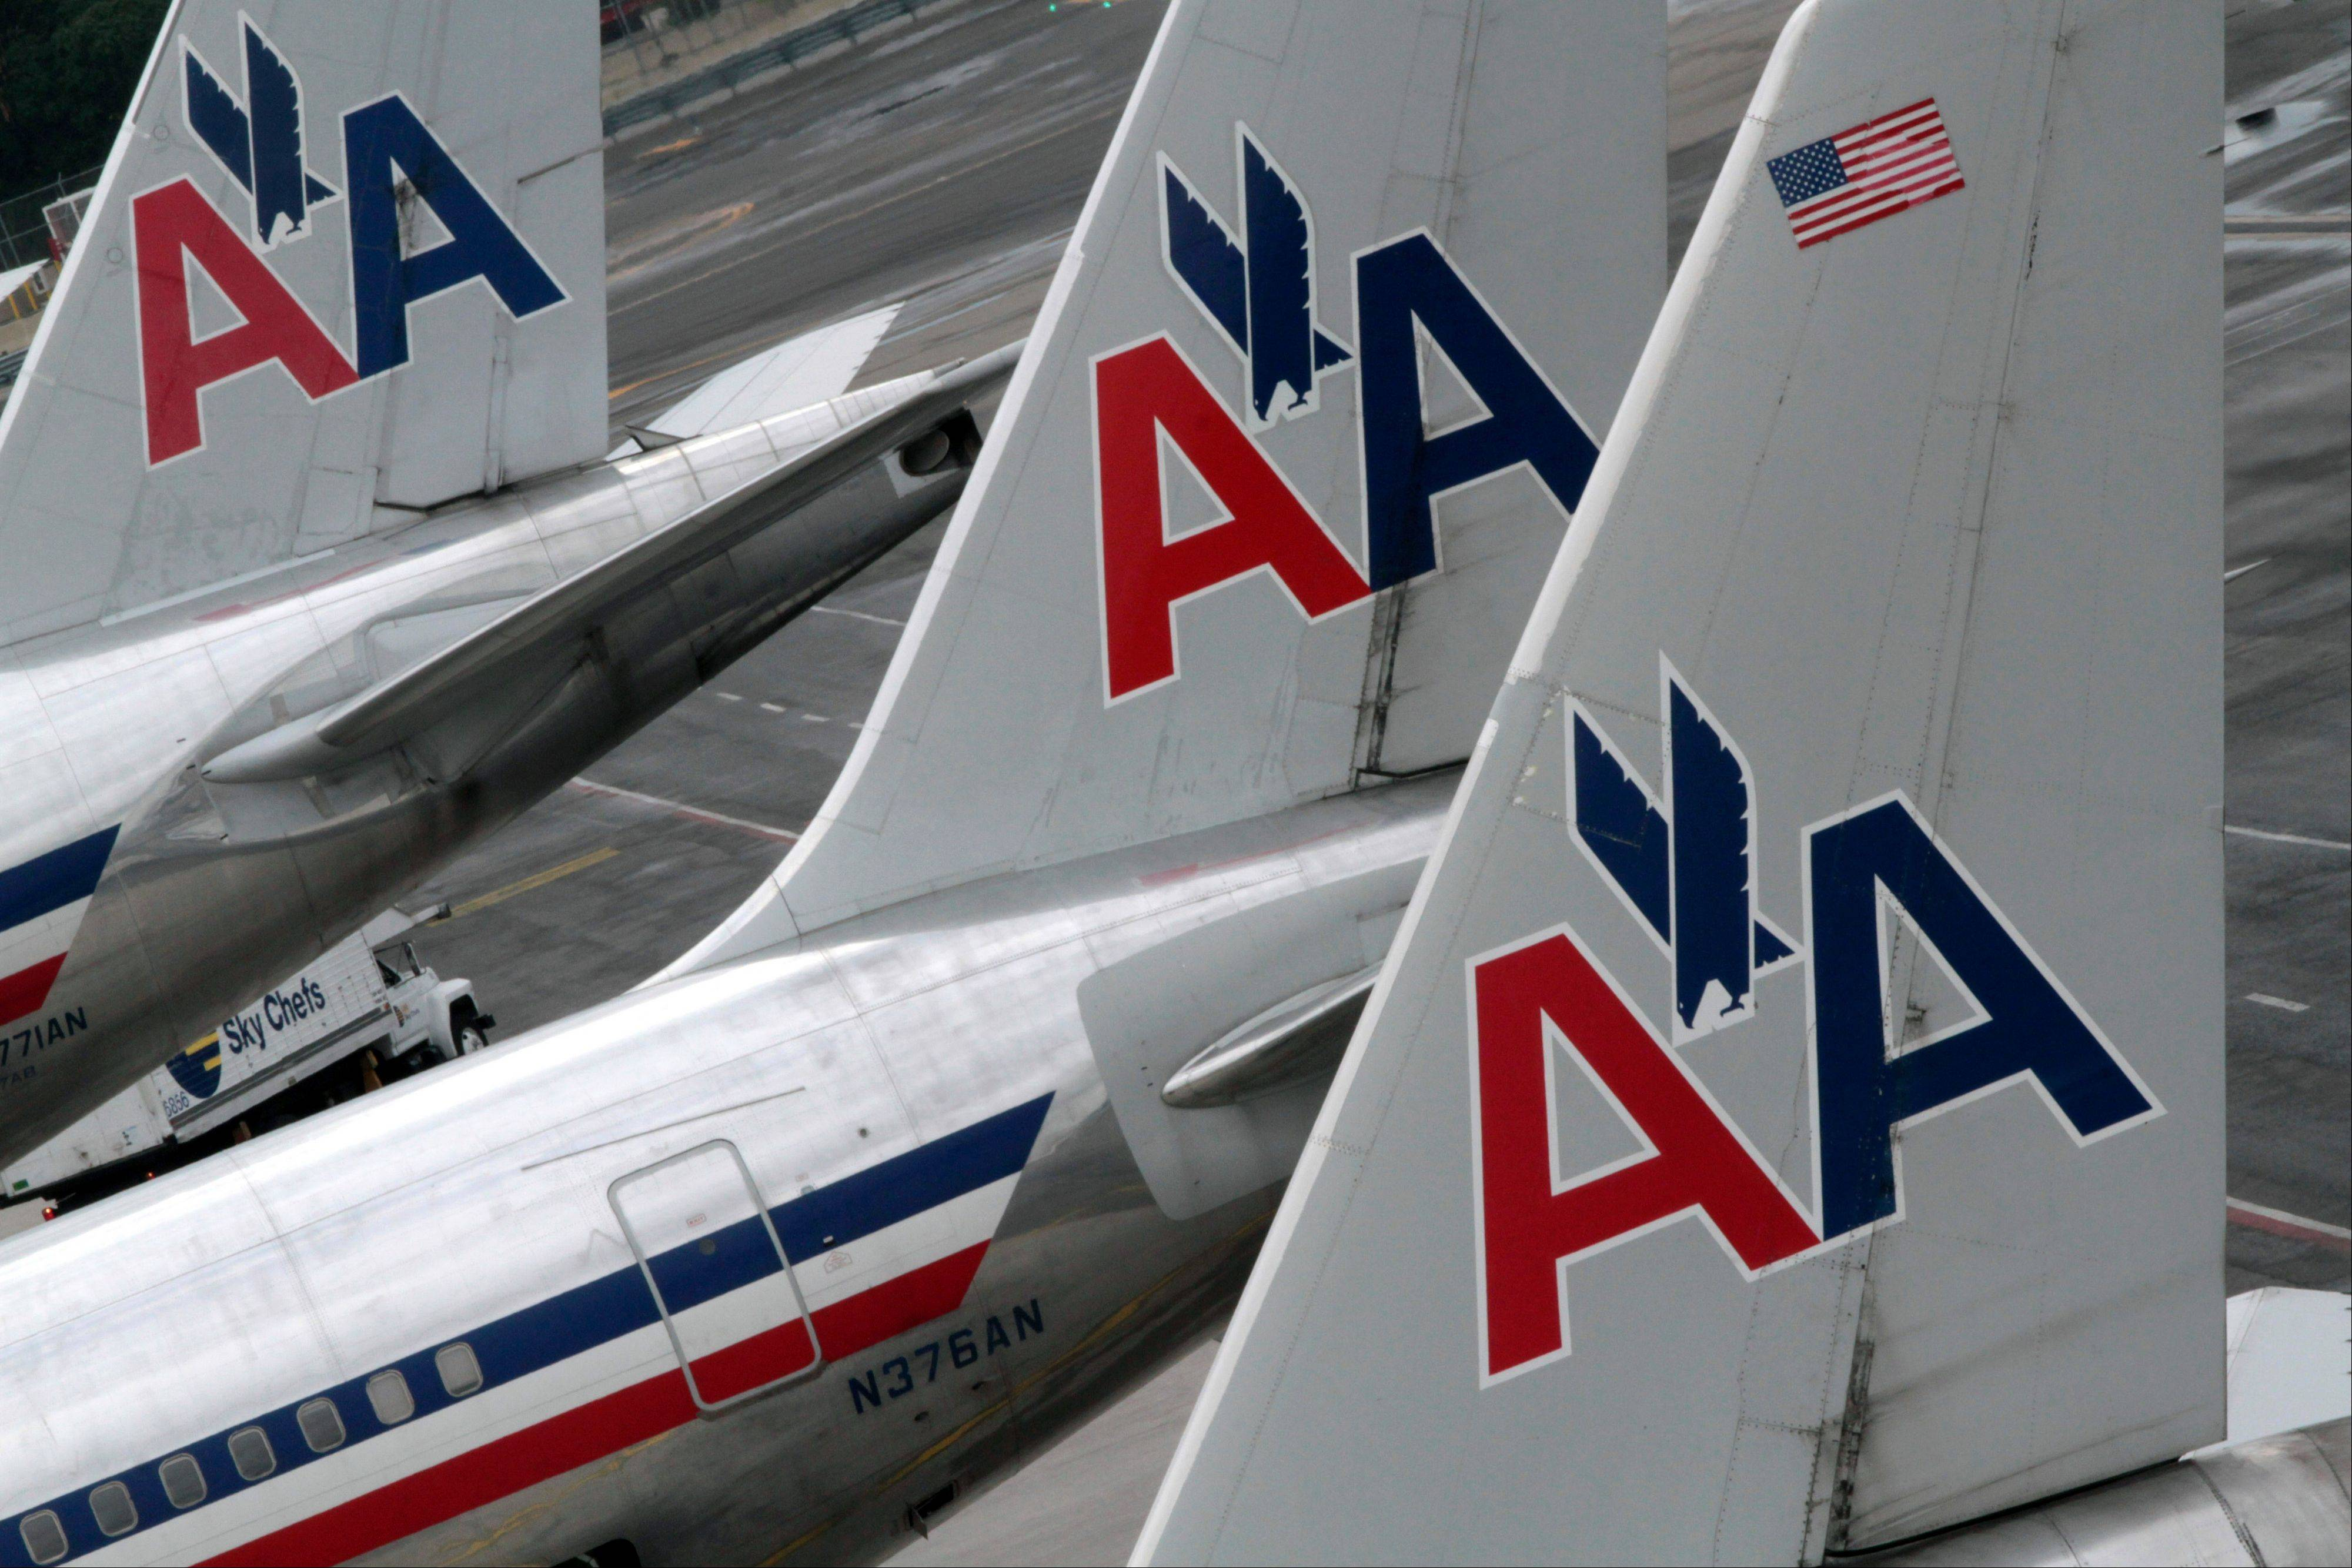 American Airlines said Wednesday said it will post job openings for 1,500 flight attendants next month. It will start hiring in December and put the new staff in training beginning in January.